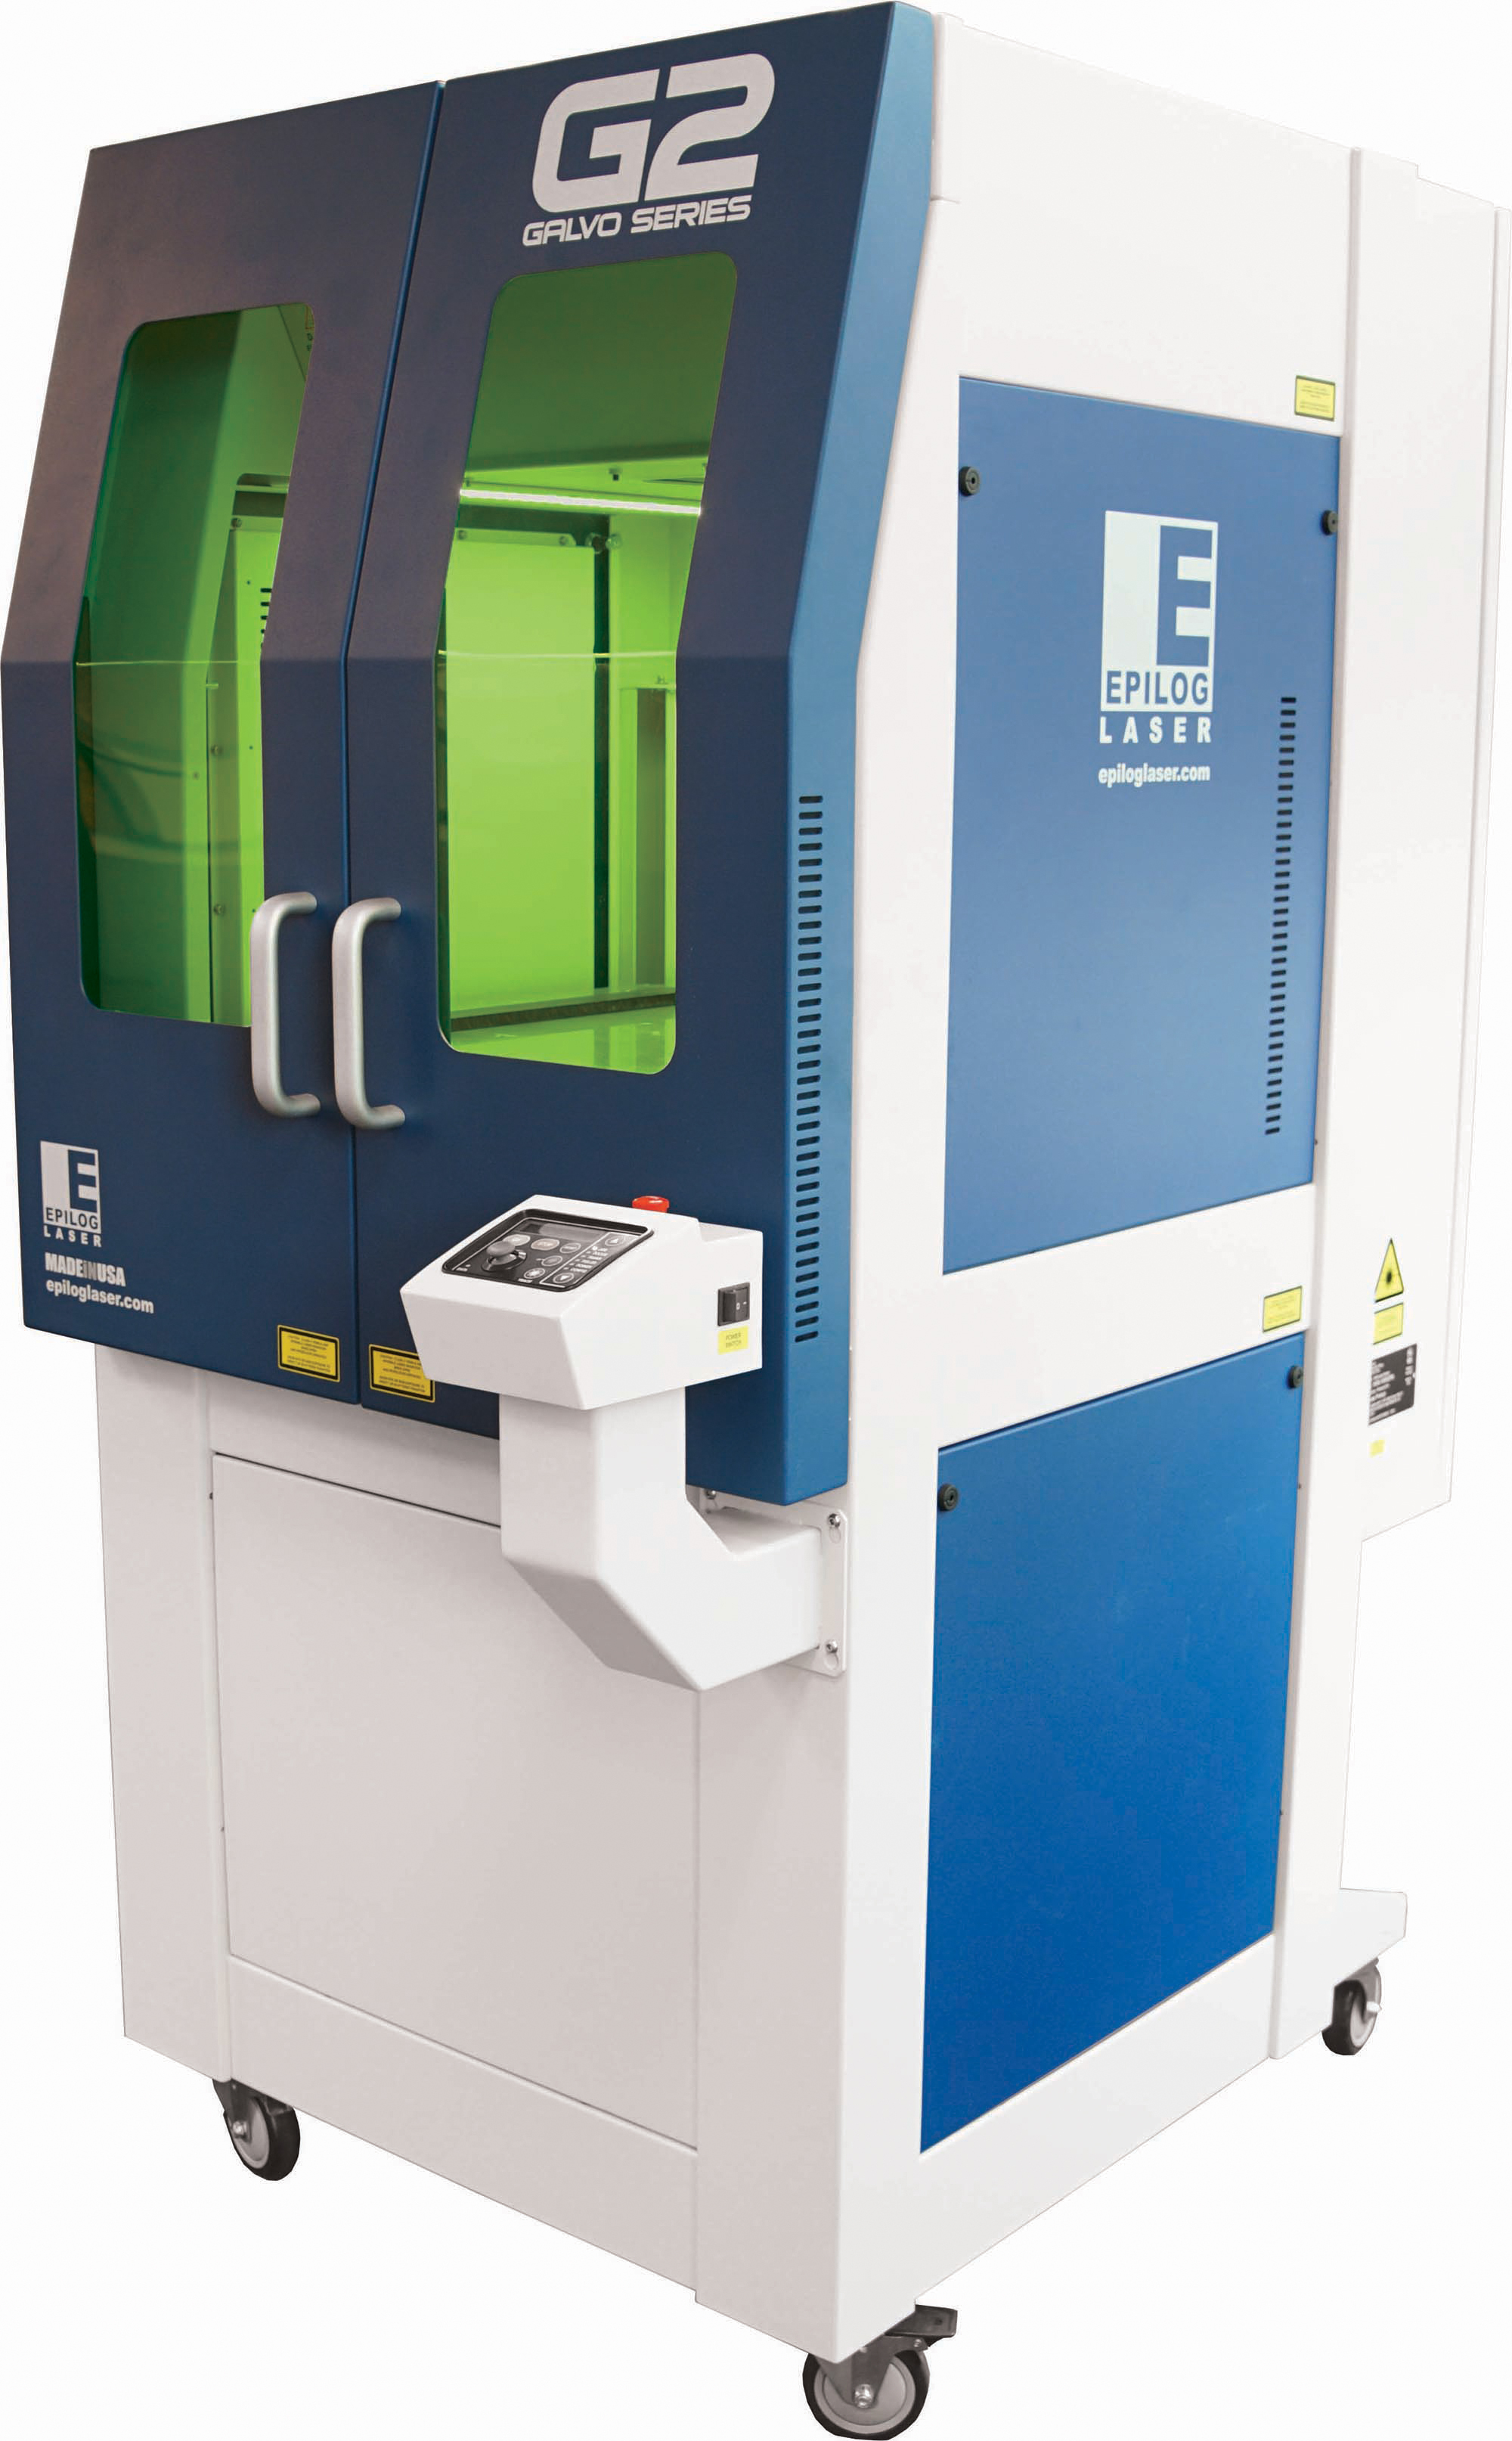 Epilog Laser Debuts G2 Galvo Laser System at IMTS | Business Wire